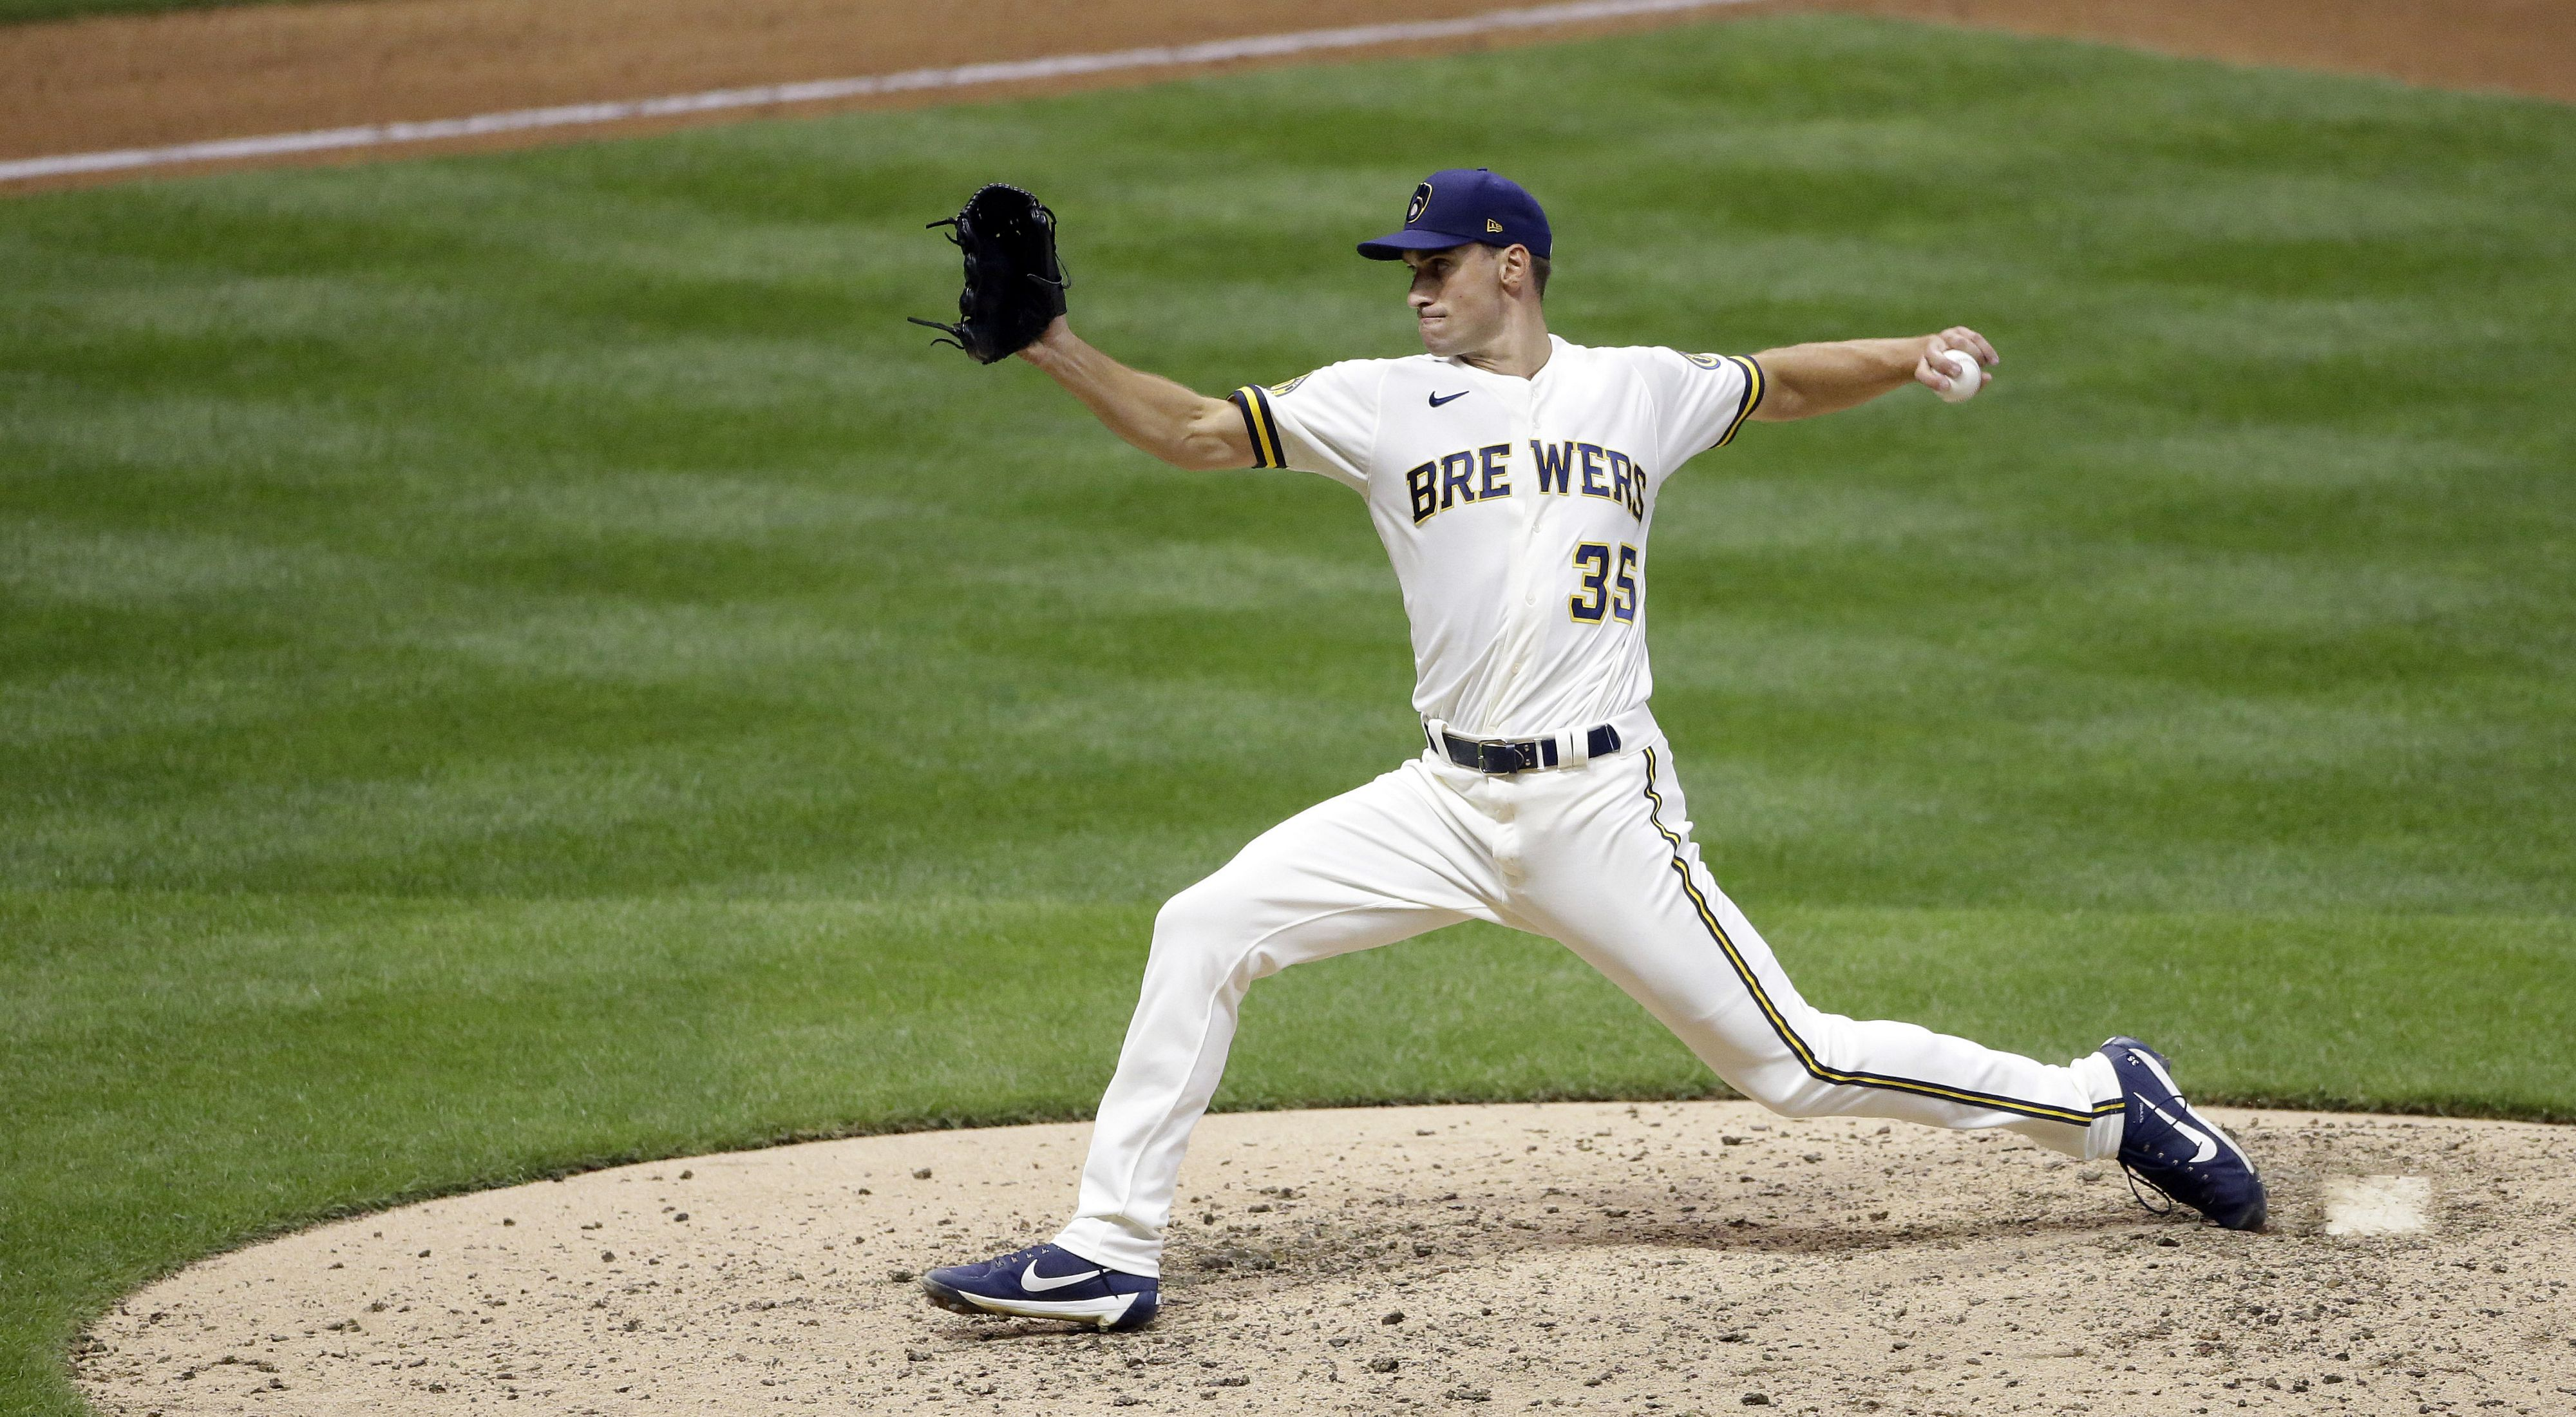 Milwaukee Brewers' Brent Suter pitches during the seventh inning of a baseball game against the Cincinnati Reds Tuesday, Aug. 25, 2020, in Milwaukee.